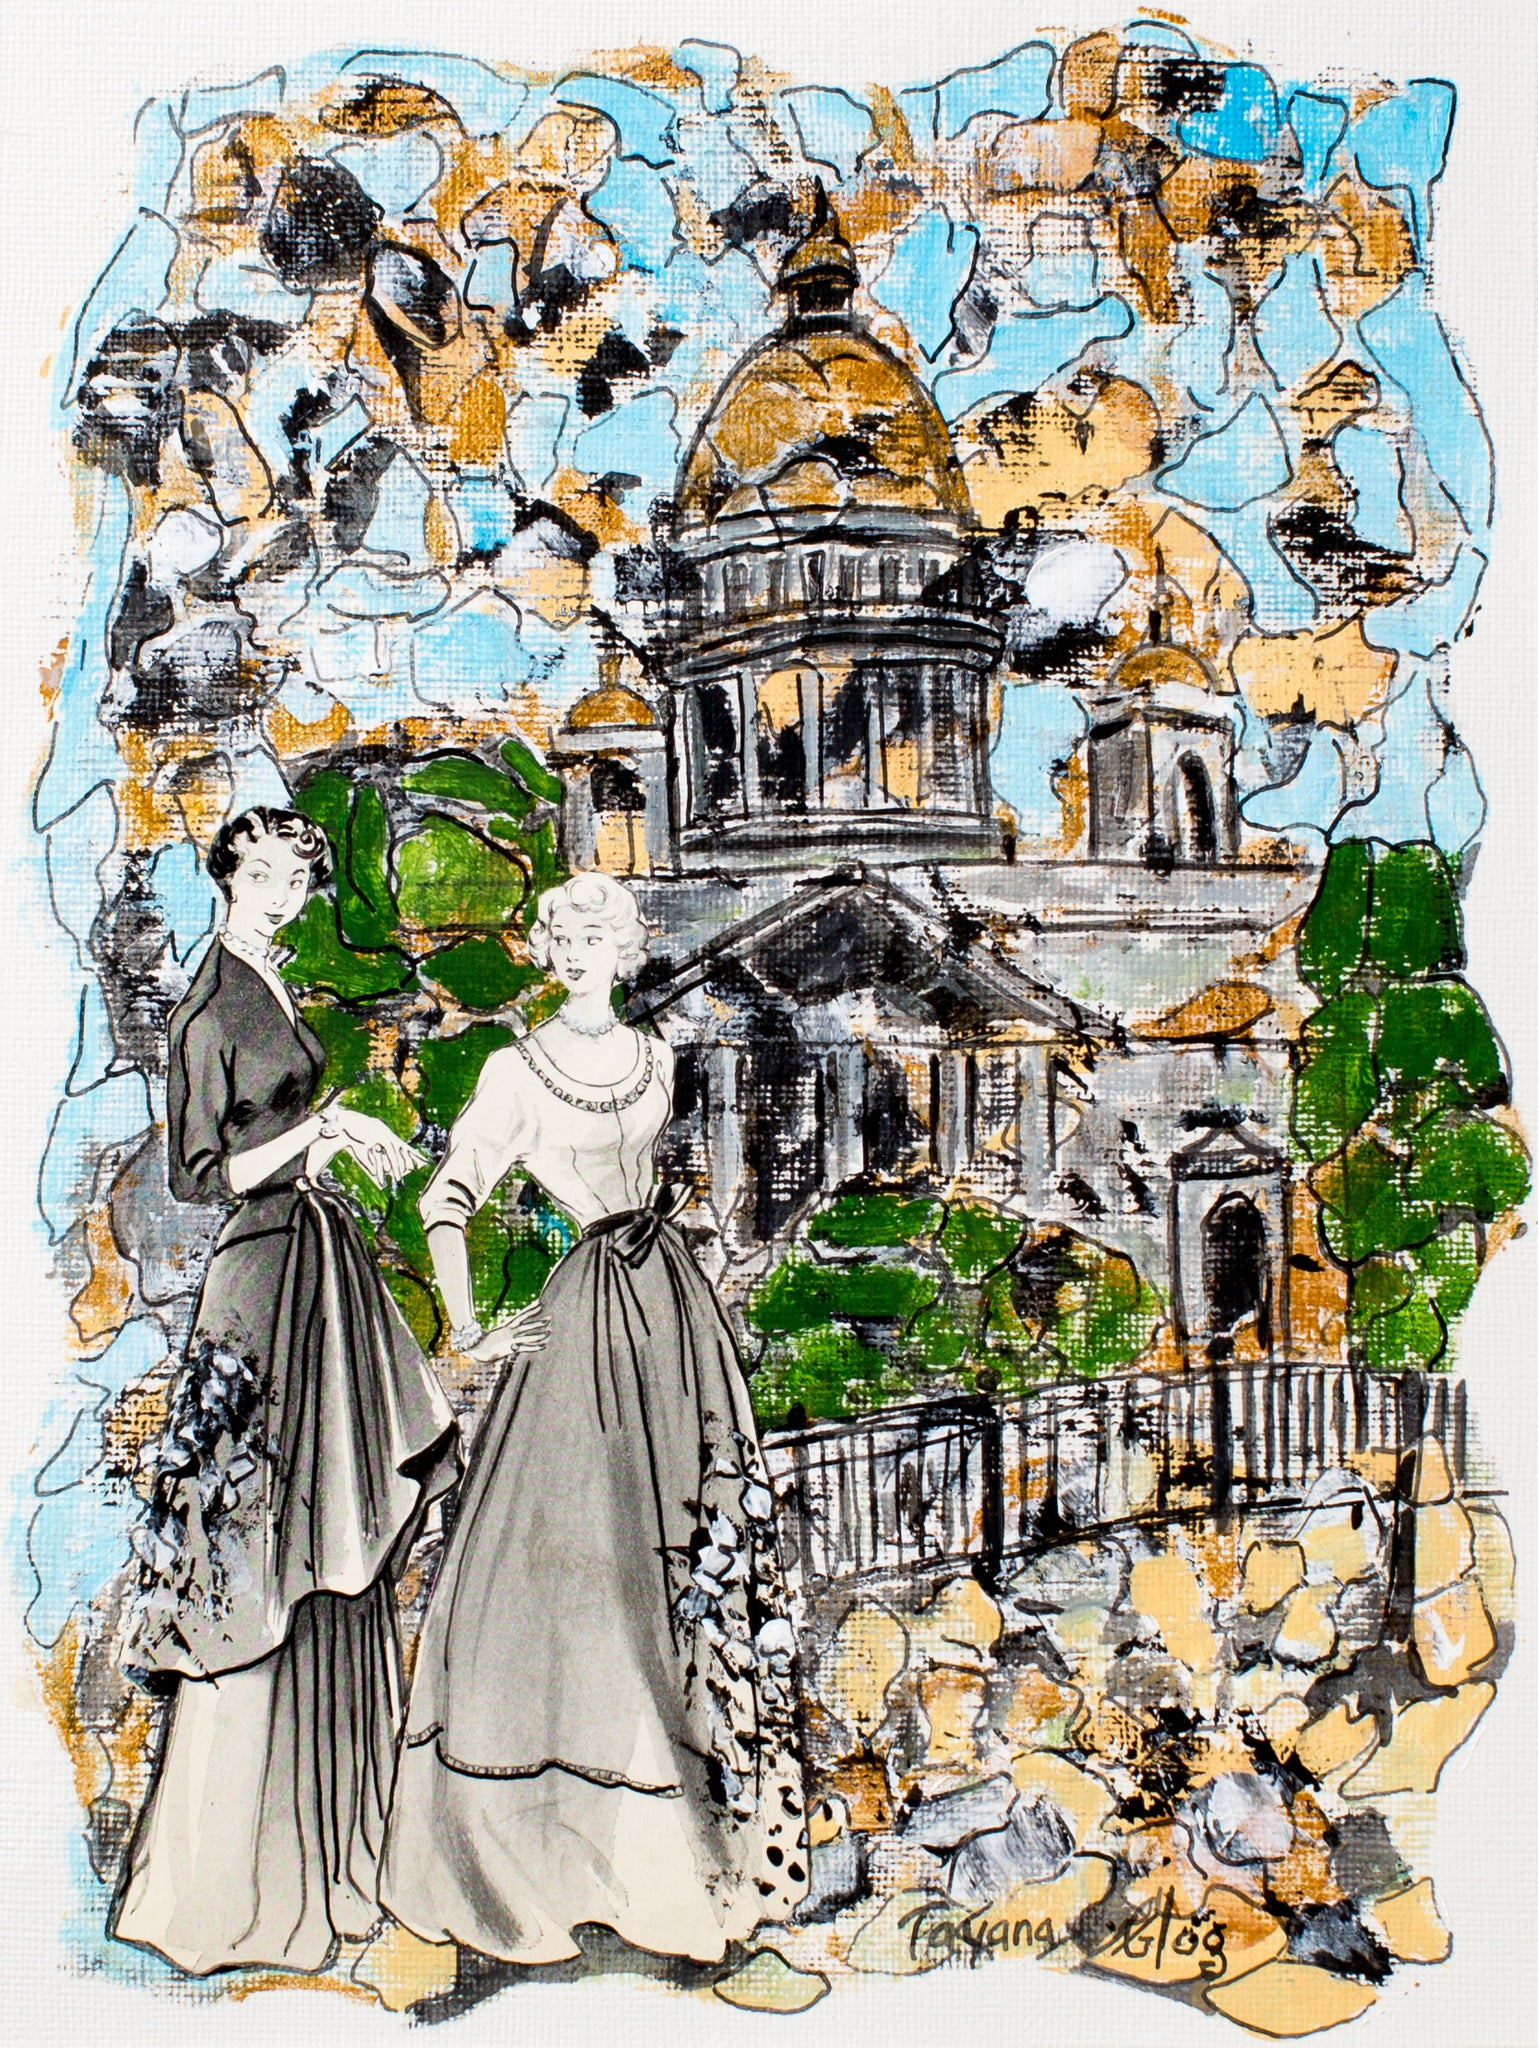 Saint-Petersburg dreaming by Tatyana Gogoloshvili, 38cm*45cm, mixed media